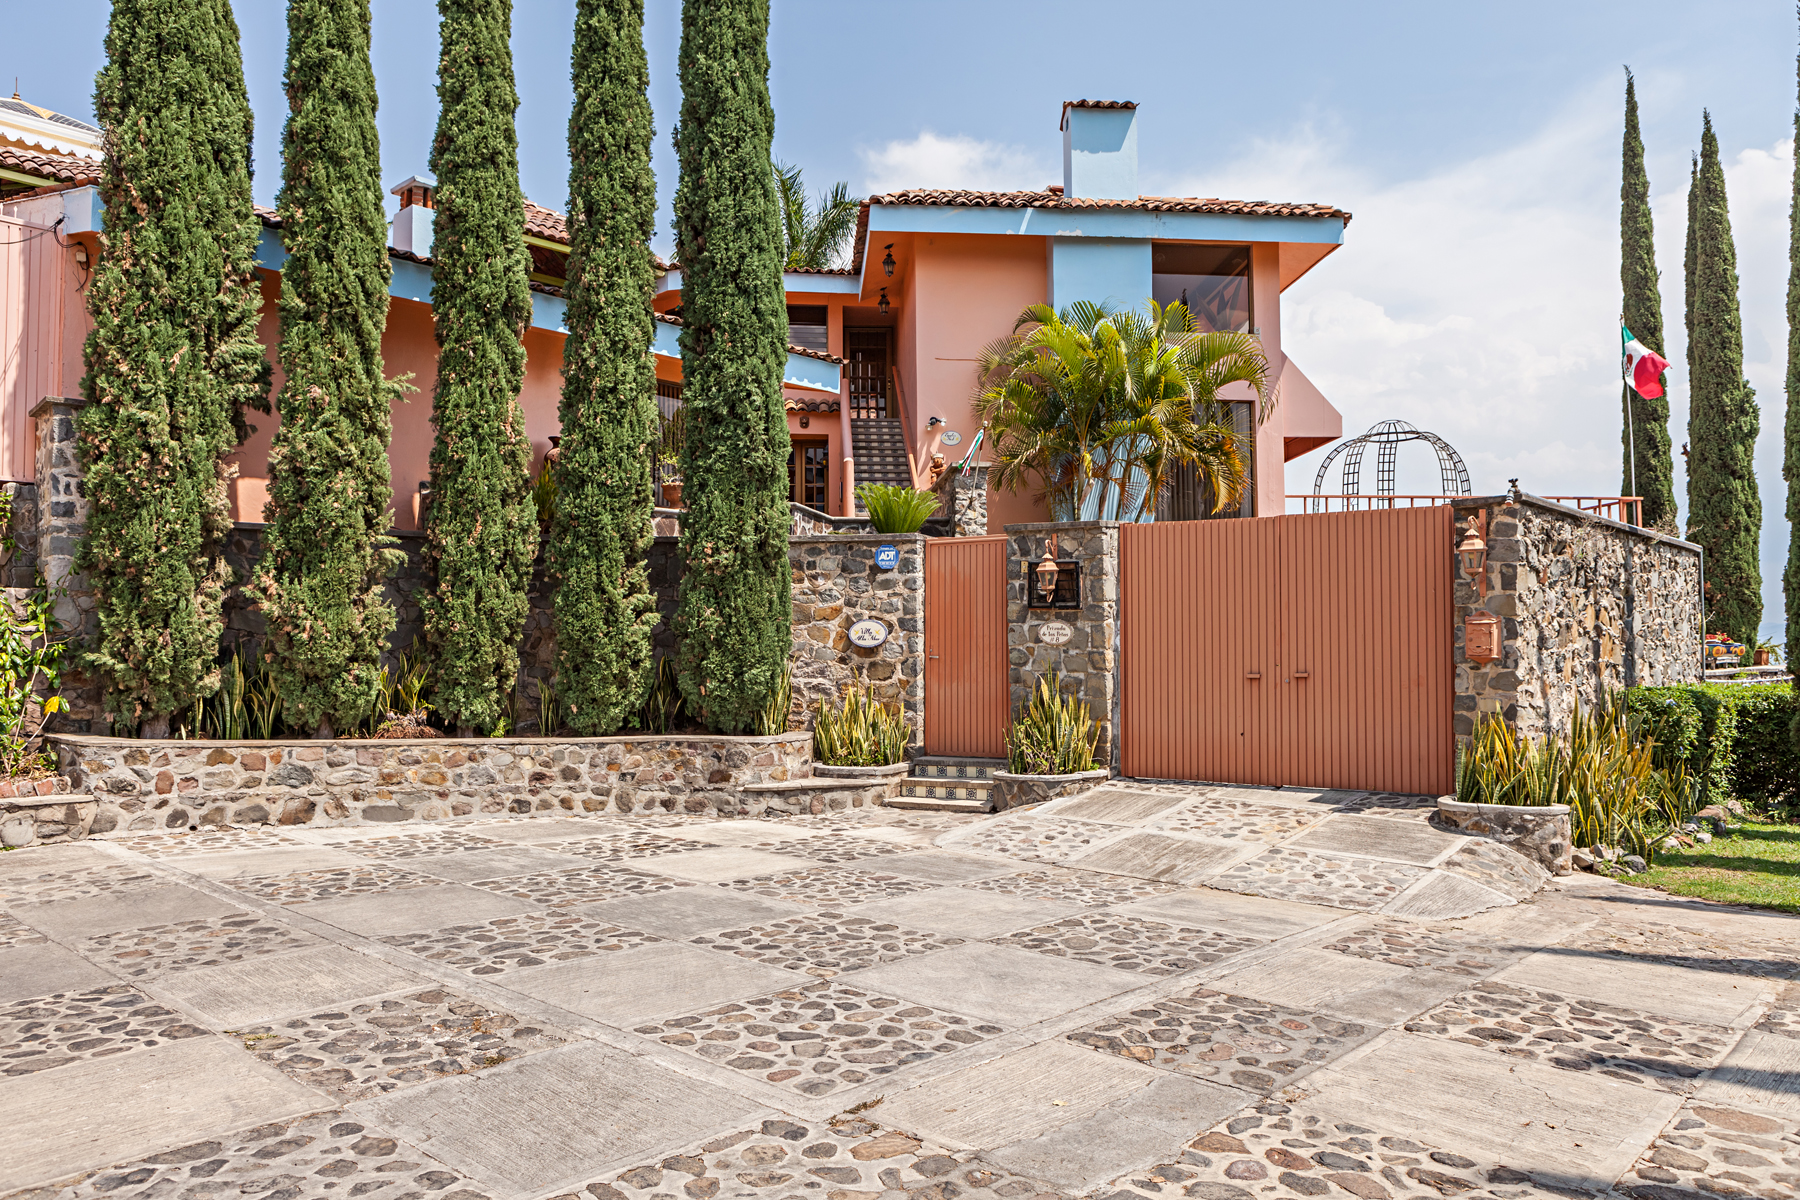 Additional photo for property listing at Villa Alta Mar Chulavista, Chapala - Ajijic Privada de las Peñas 8 Chula vista Country Club Ajijic, Jalisco 45920 Mexico